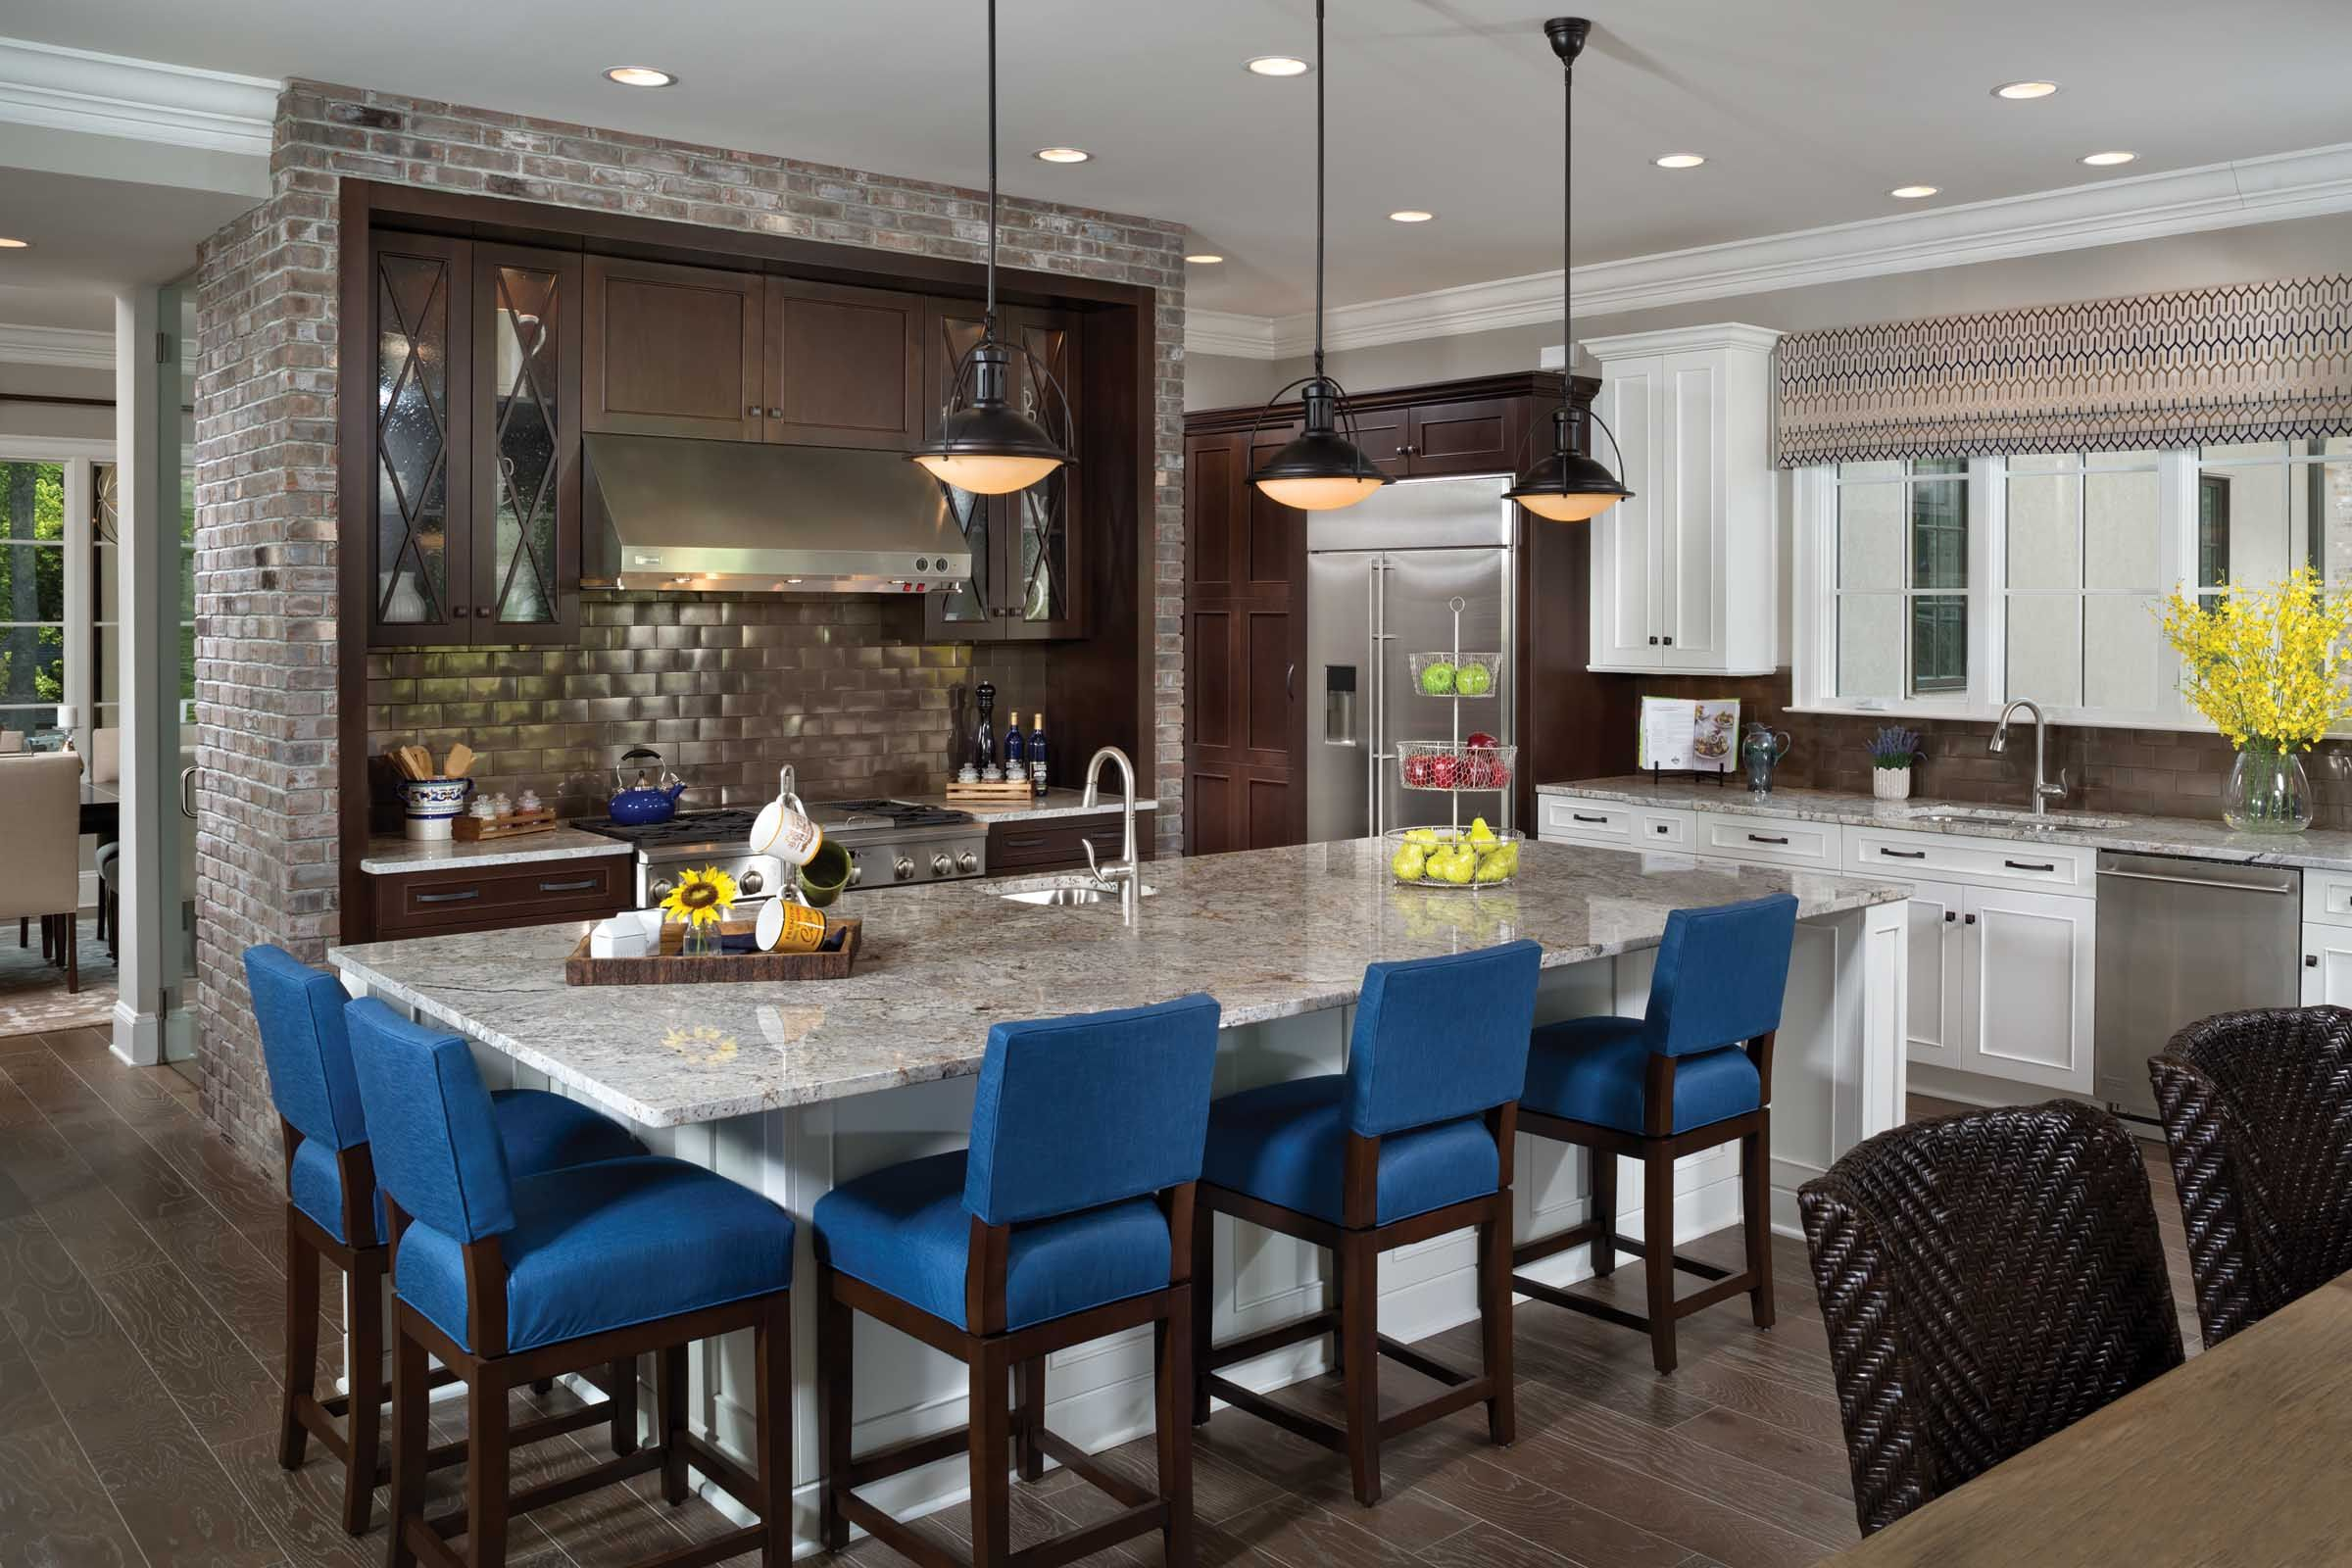 The kitchen in our versailles plan offers an incredible island with